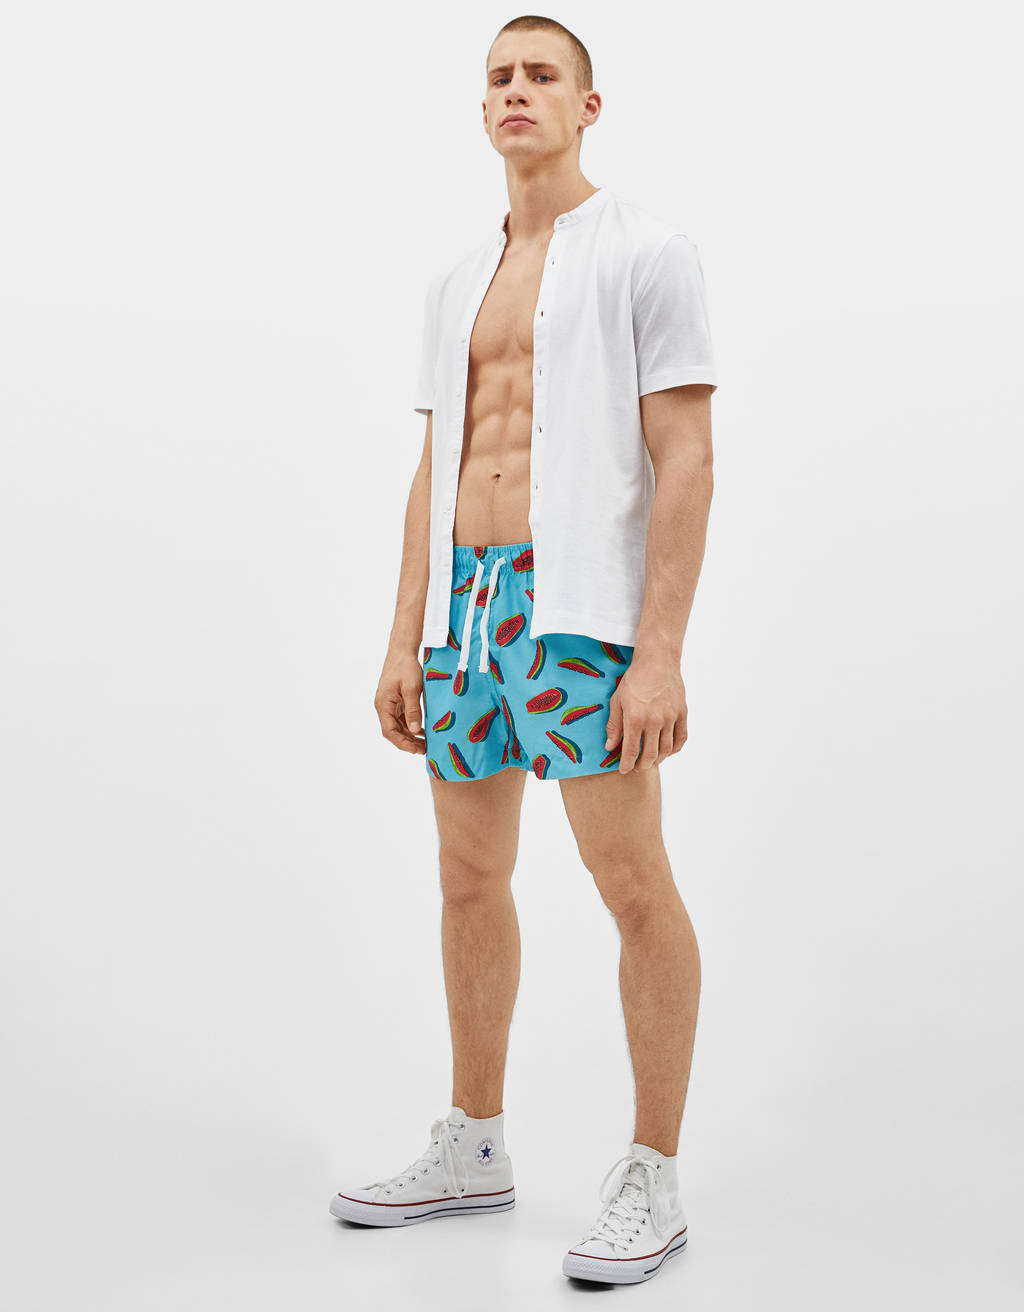 Printed swimming trunks